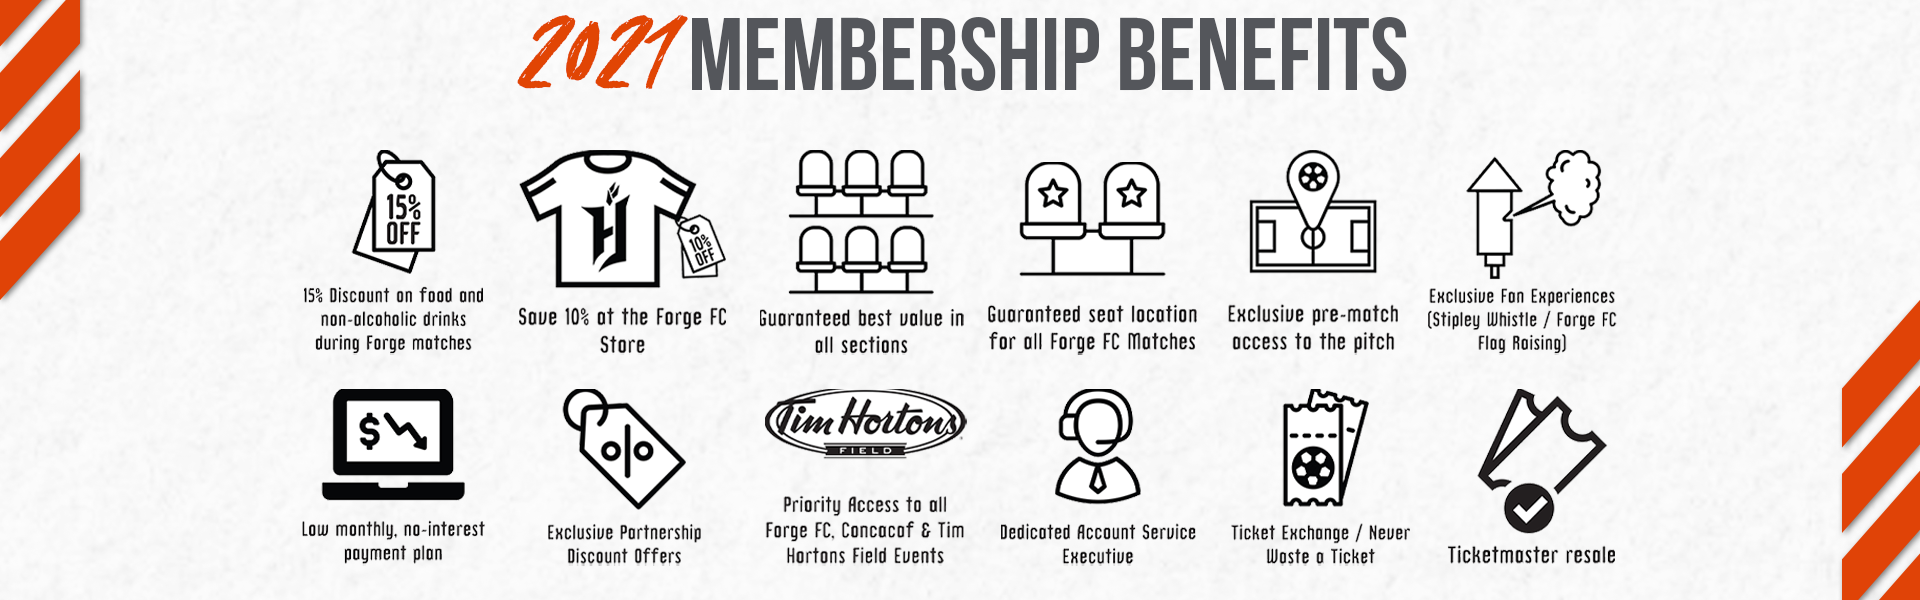 2021-Membership-Benefits-1920x600